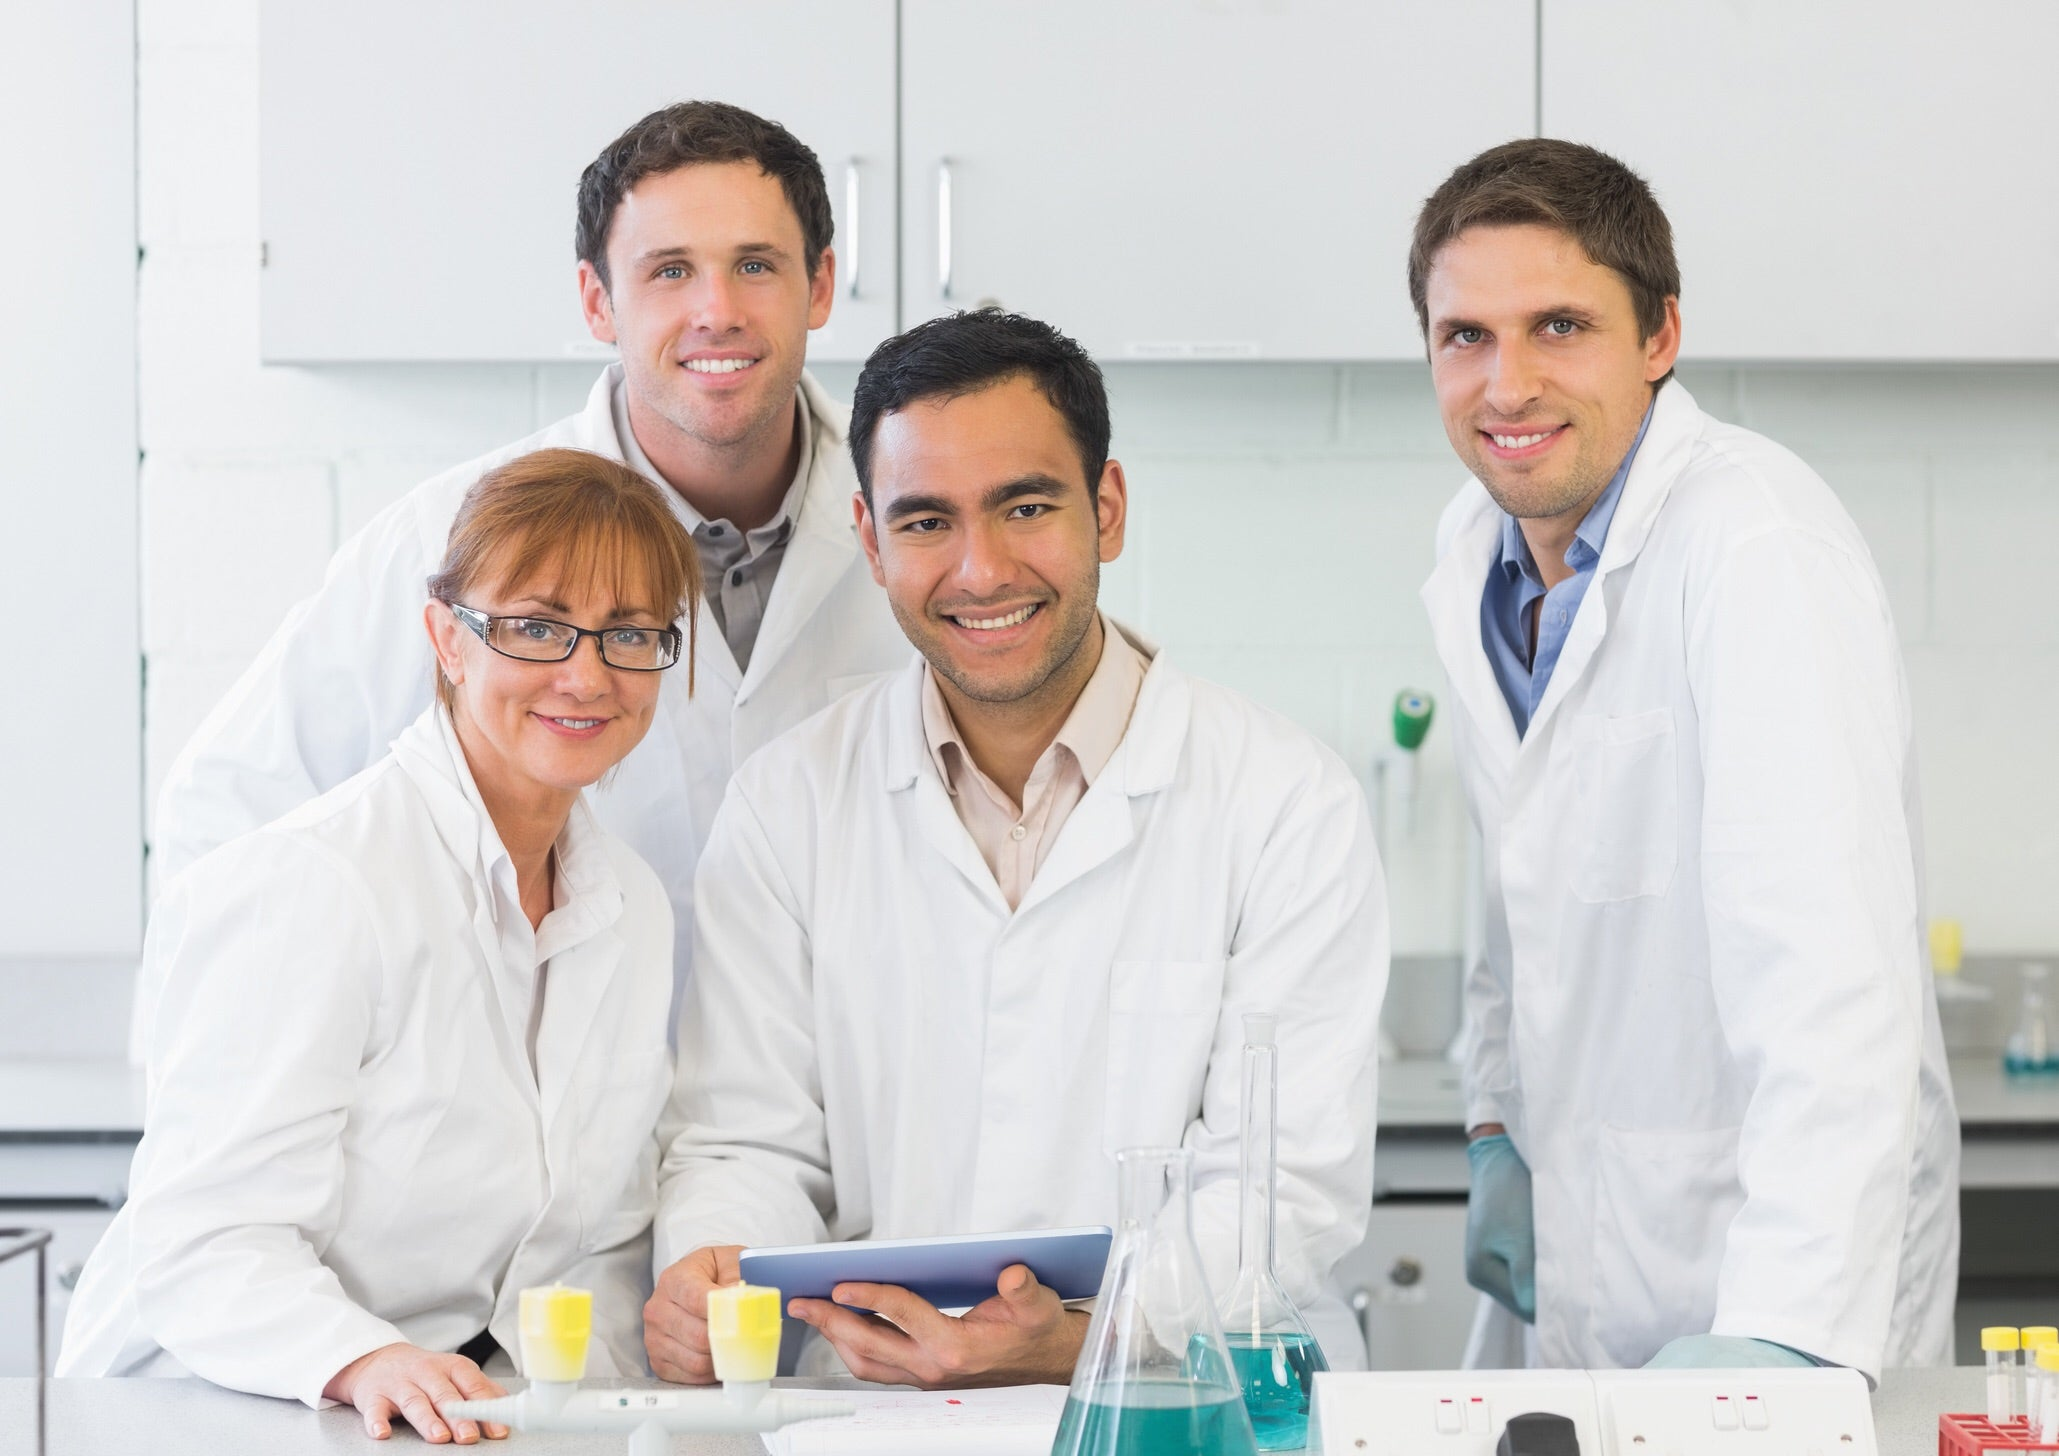 Portrait image of smiling scientists in a laboratory setting